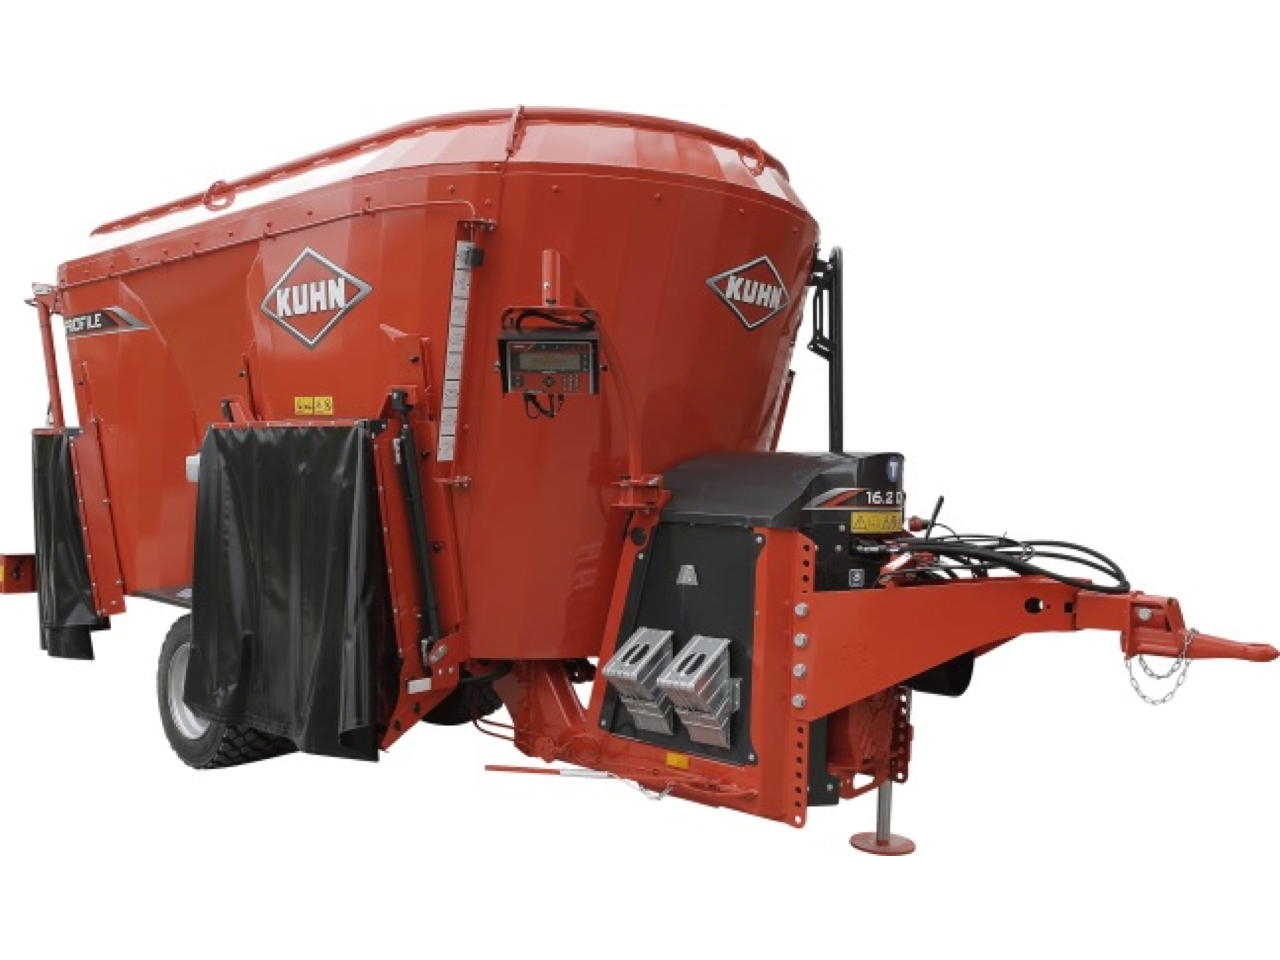 Kuhn Profile 2 DS Profile 12.2 DS